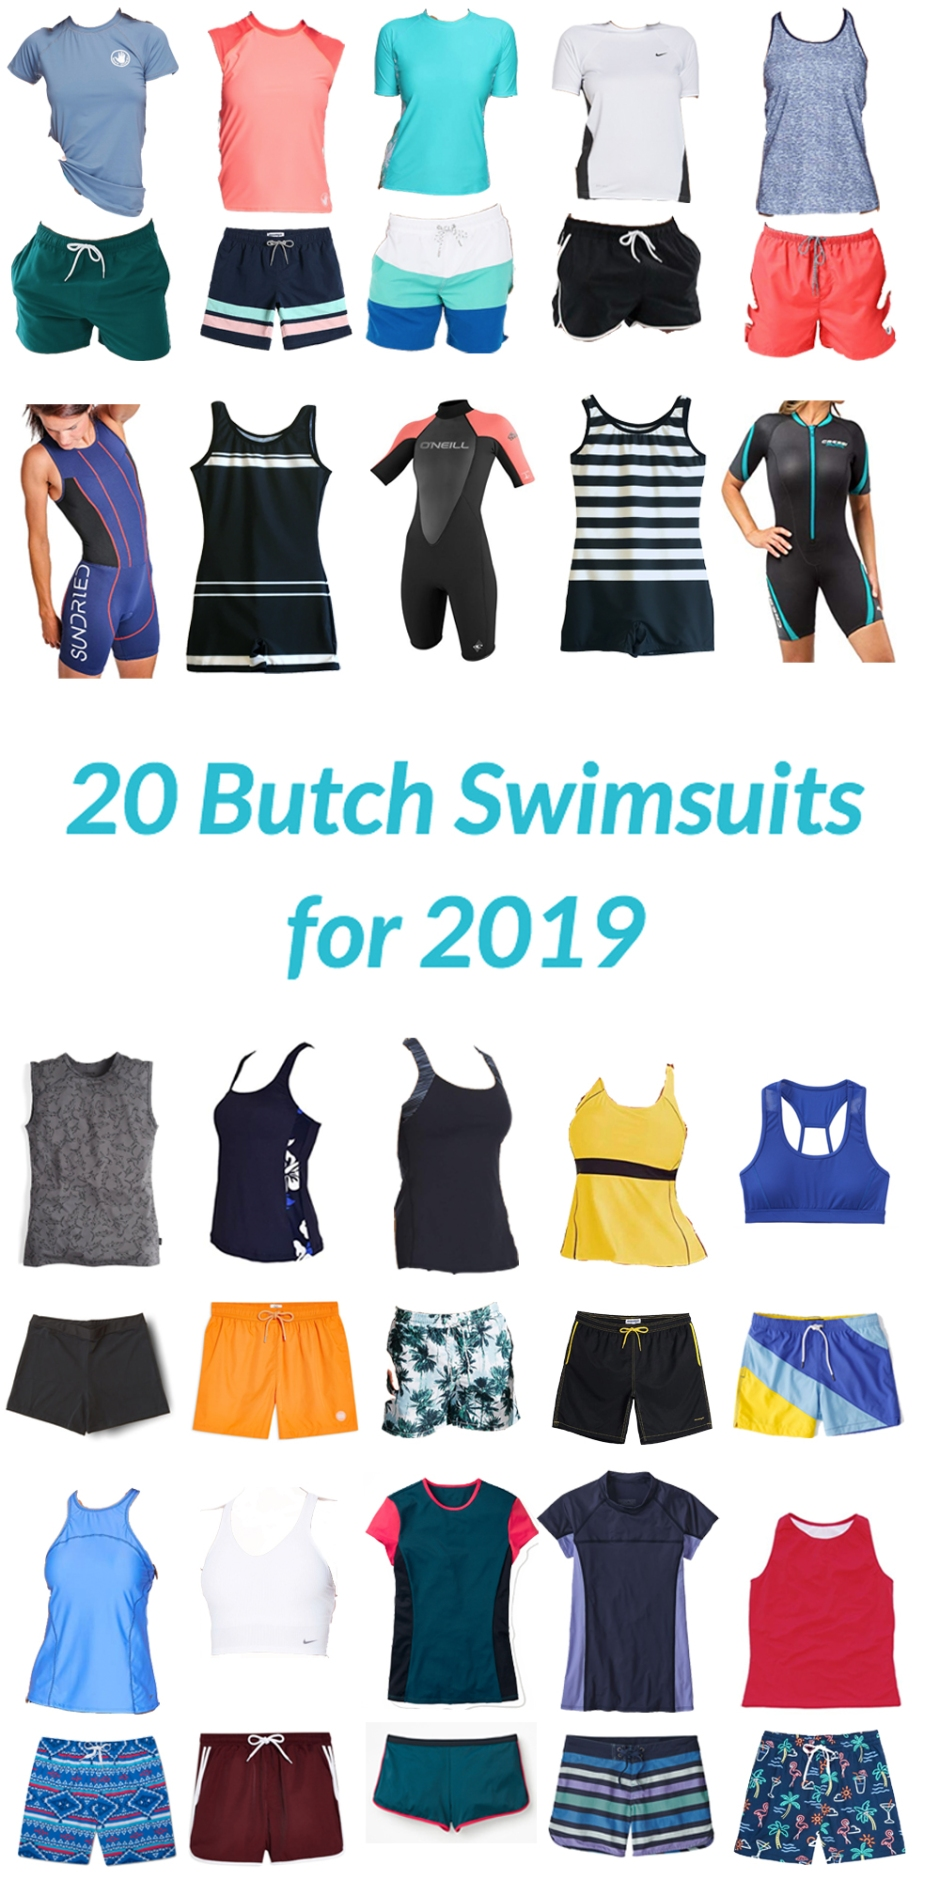 Butch swimsuits, butch swimwear